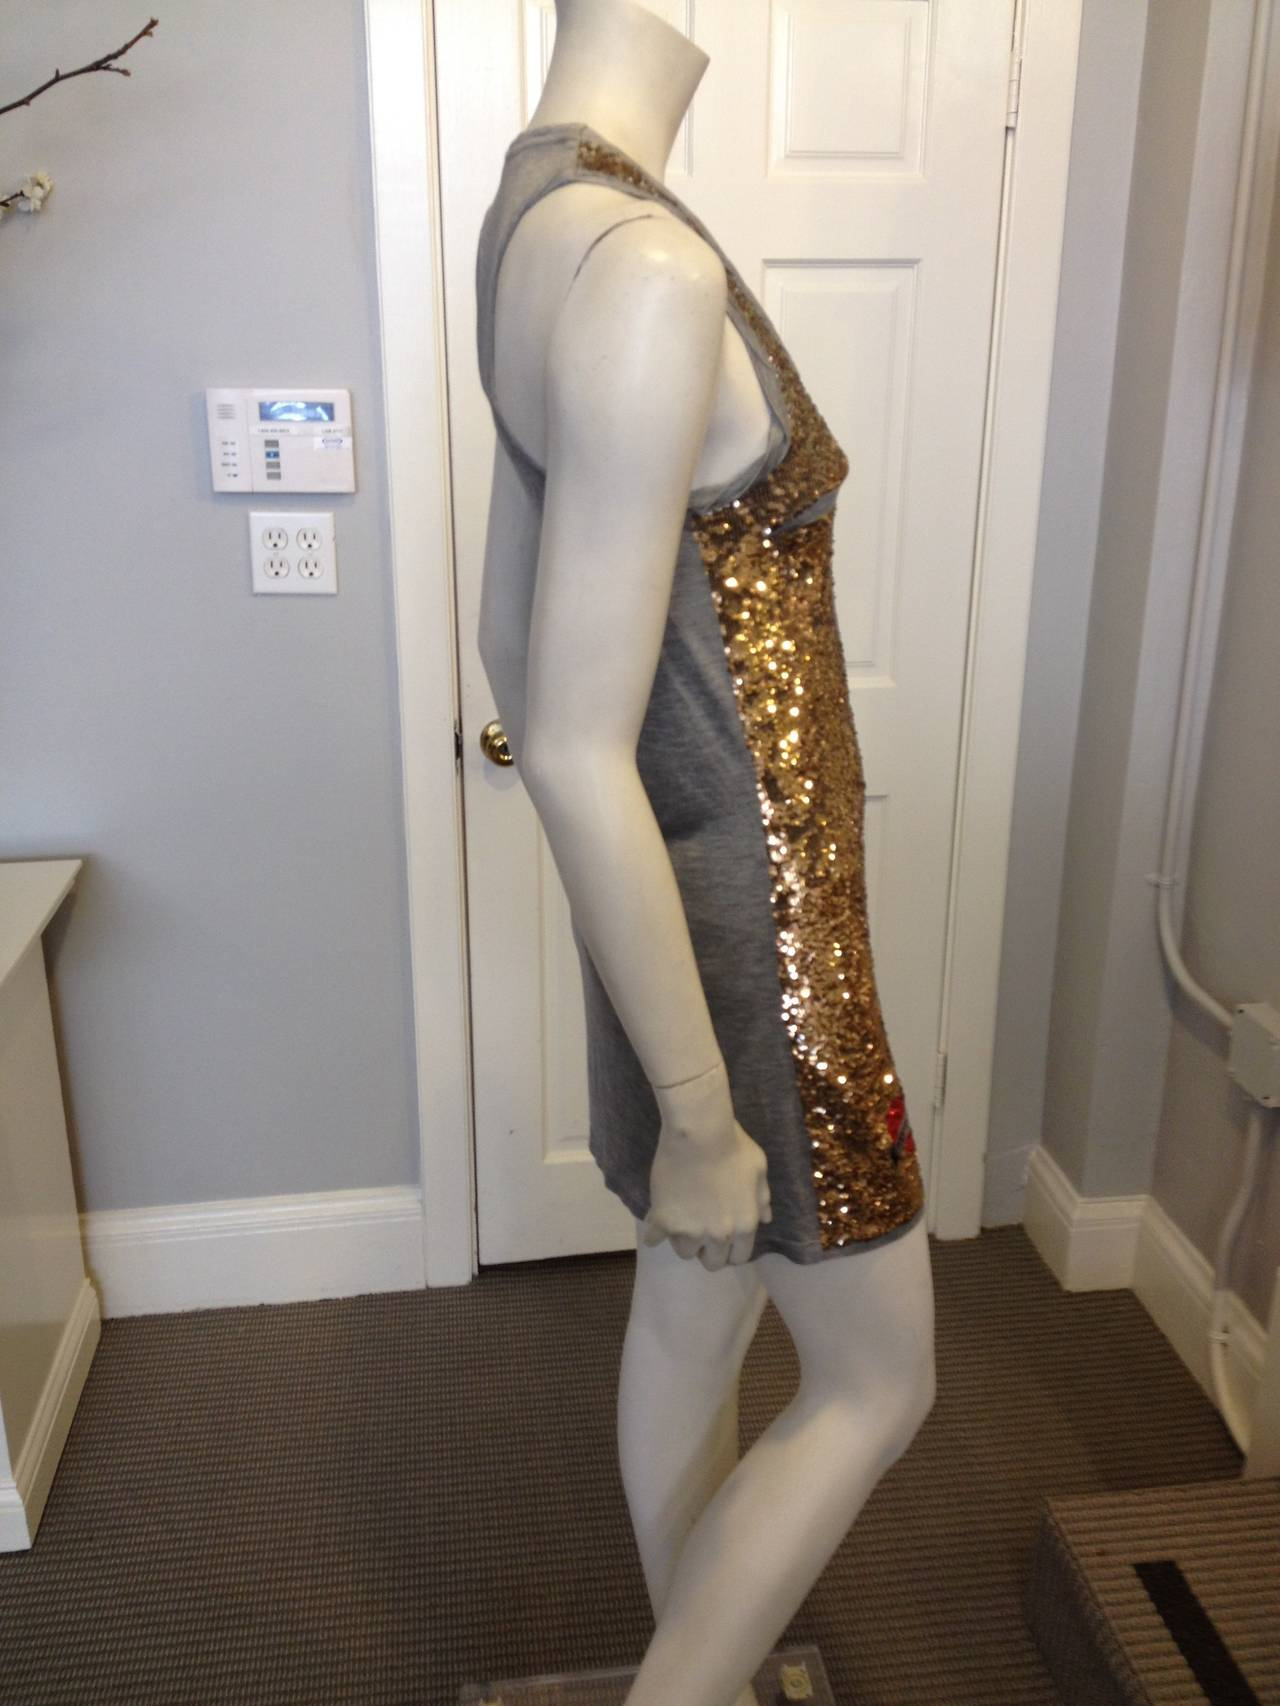 Roberto Cavalli Grey Jersey Dress with Gold Sequins at 1stdibs